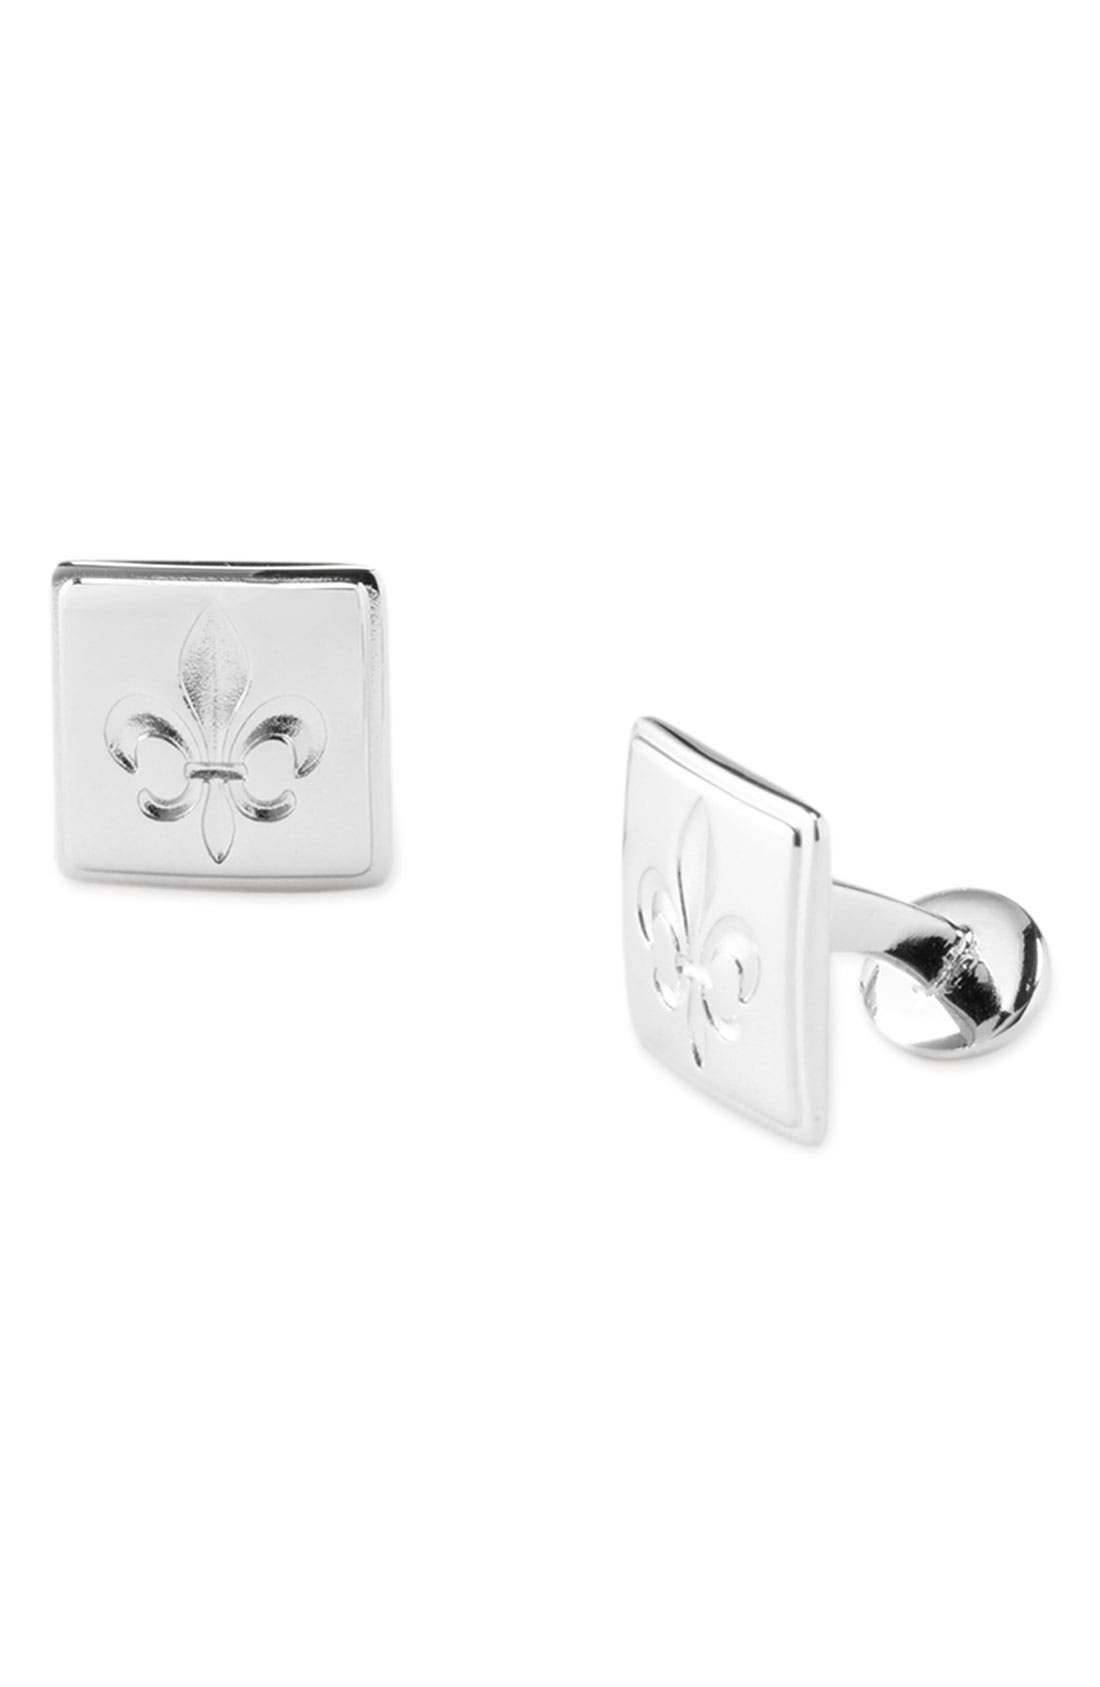 Alternate Image 1 Selected - David Donahue 'Fleur de Lis' Sterling Silver Cuff Links